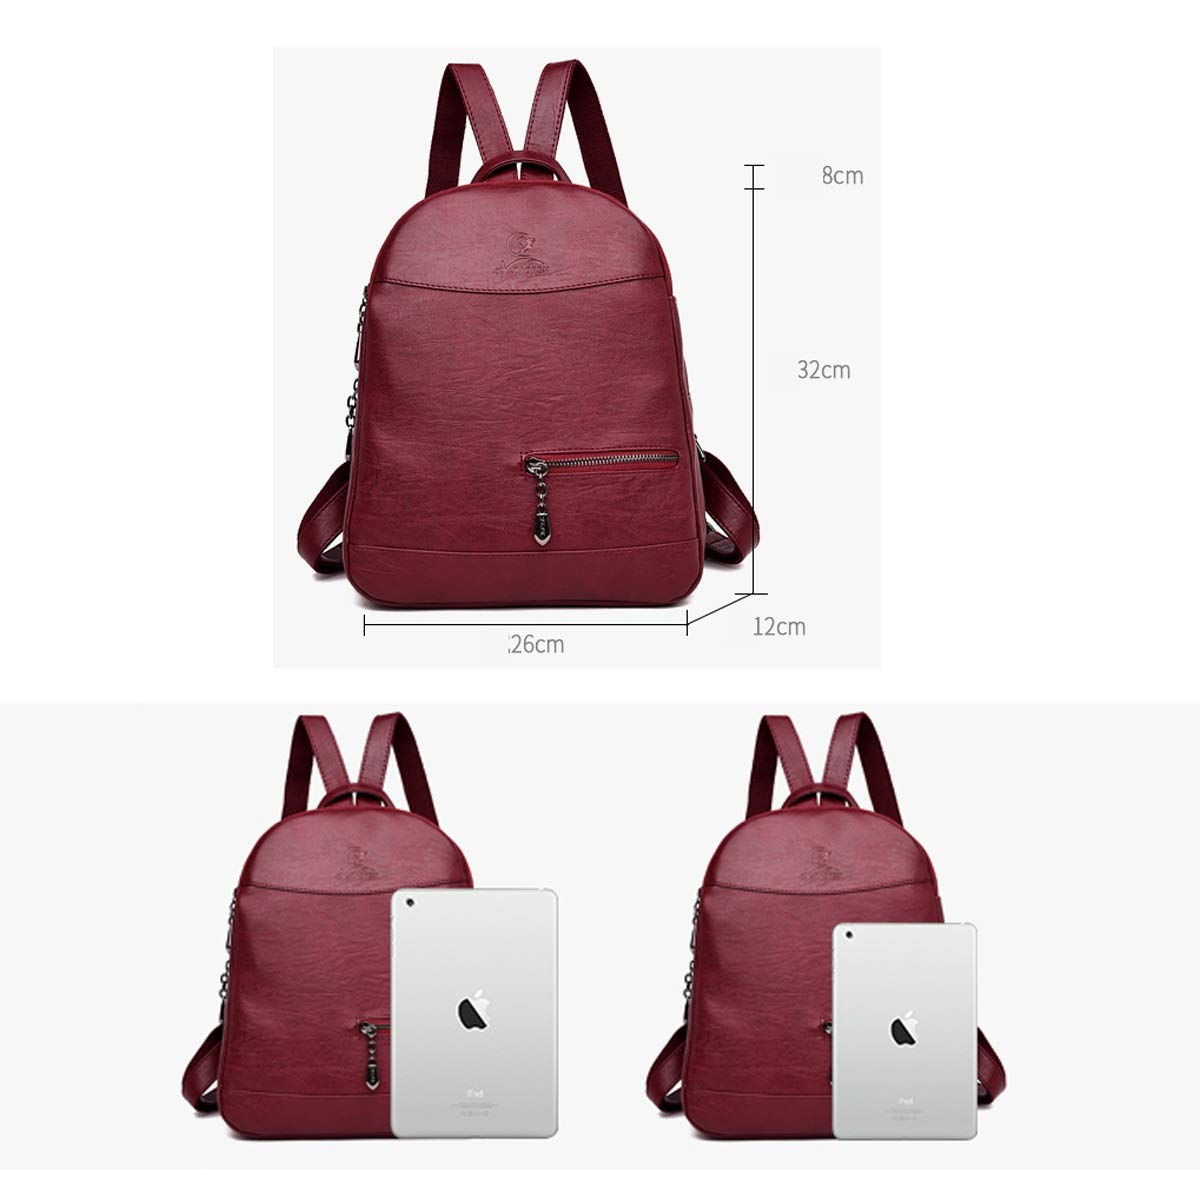 Black//Brown//Purple//Red PU Leather for Women /& Men Stylish and Practical ZHICHUANG Girls Multipurpose Backpack for Daily Travel//Outdoor//Travel//School//Work//Fashion//Leisure